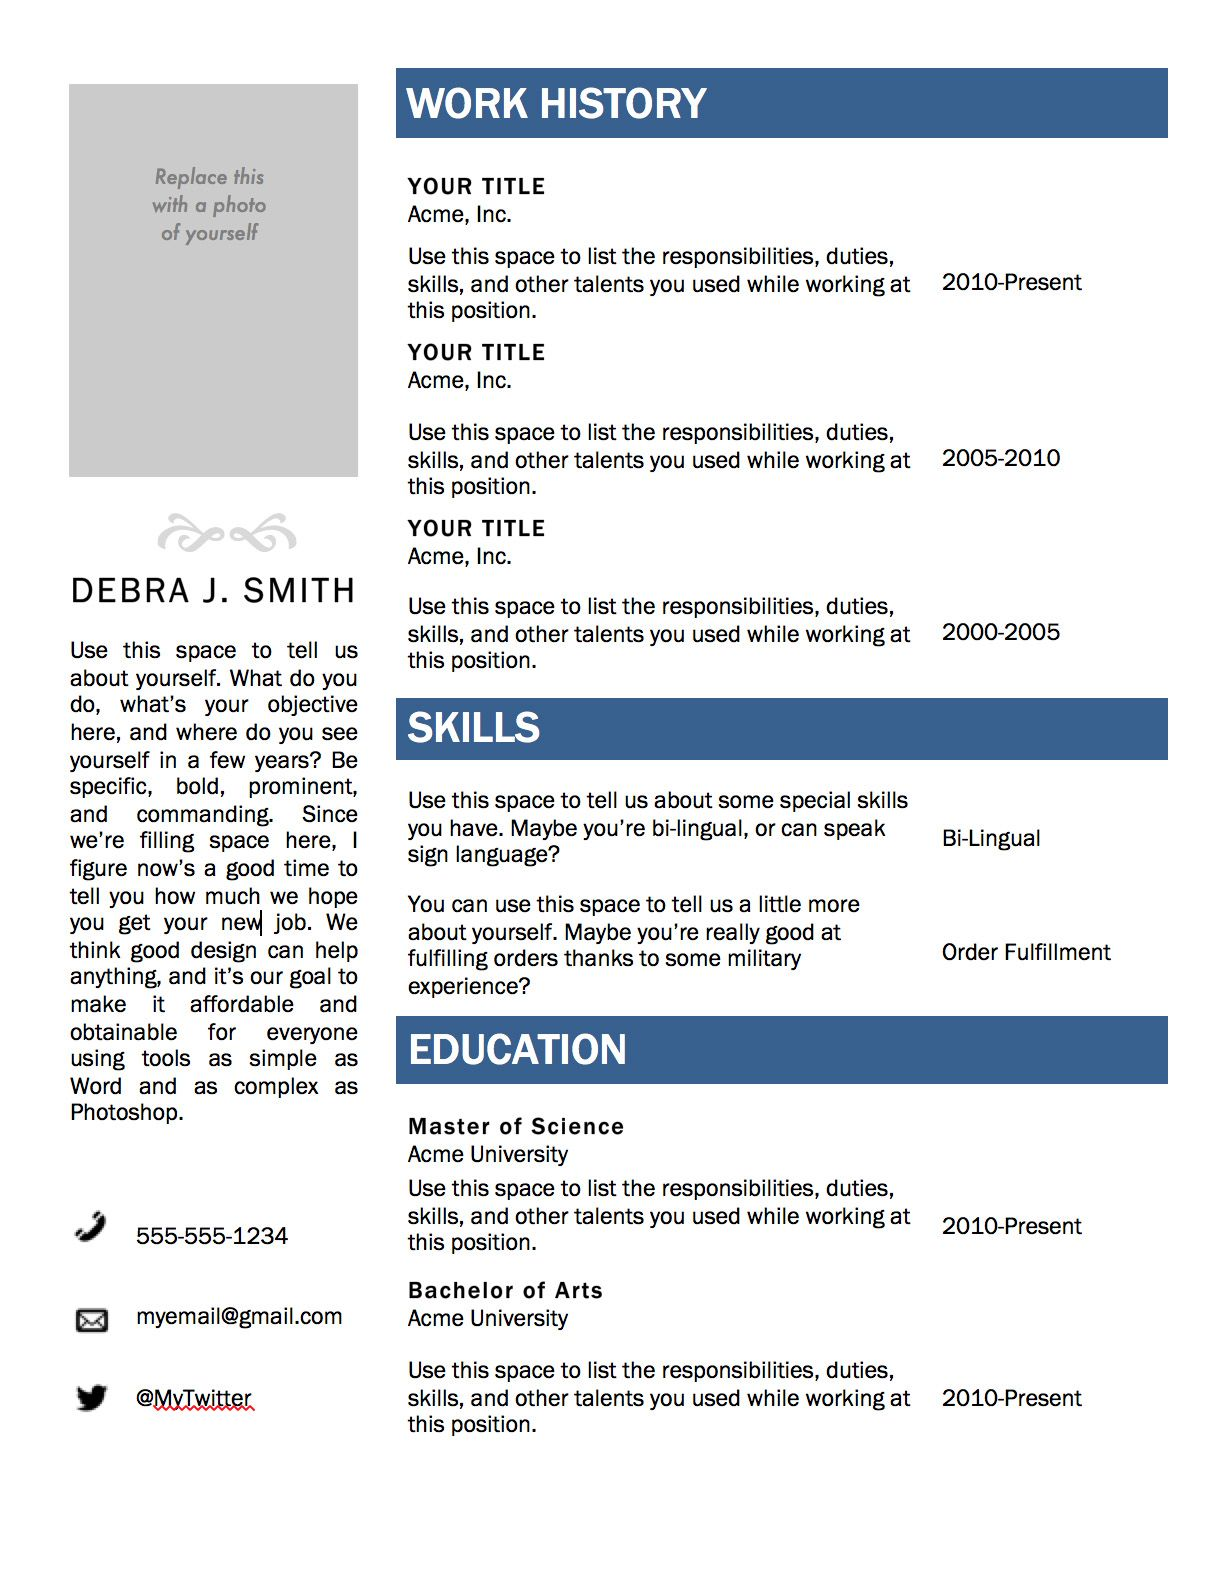 Download Resume Templates Microsoft Word 504 topresume – Download Resumes in Word Format